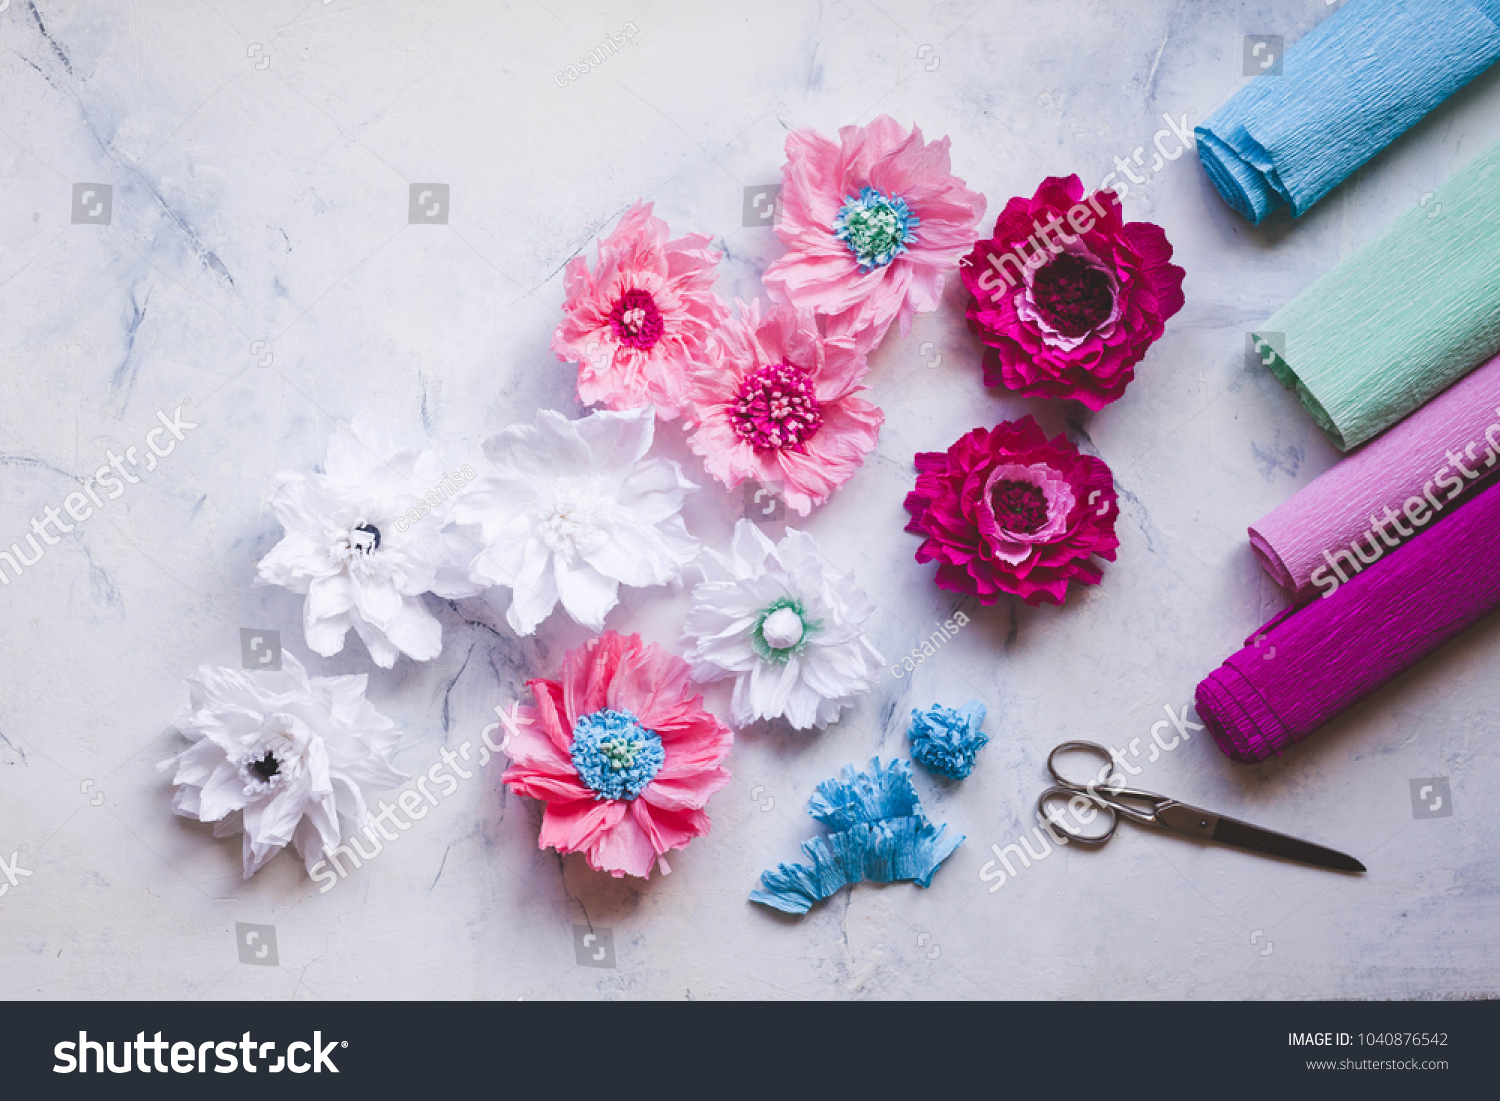 Paper Creative Flower Pastel Color Crepe Stock Photo Download Now